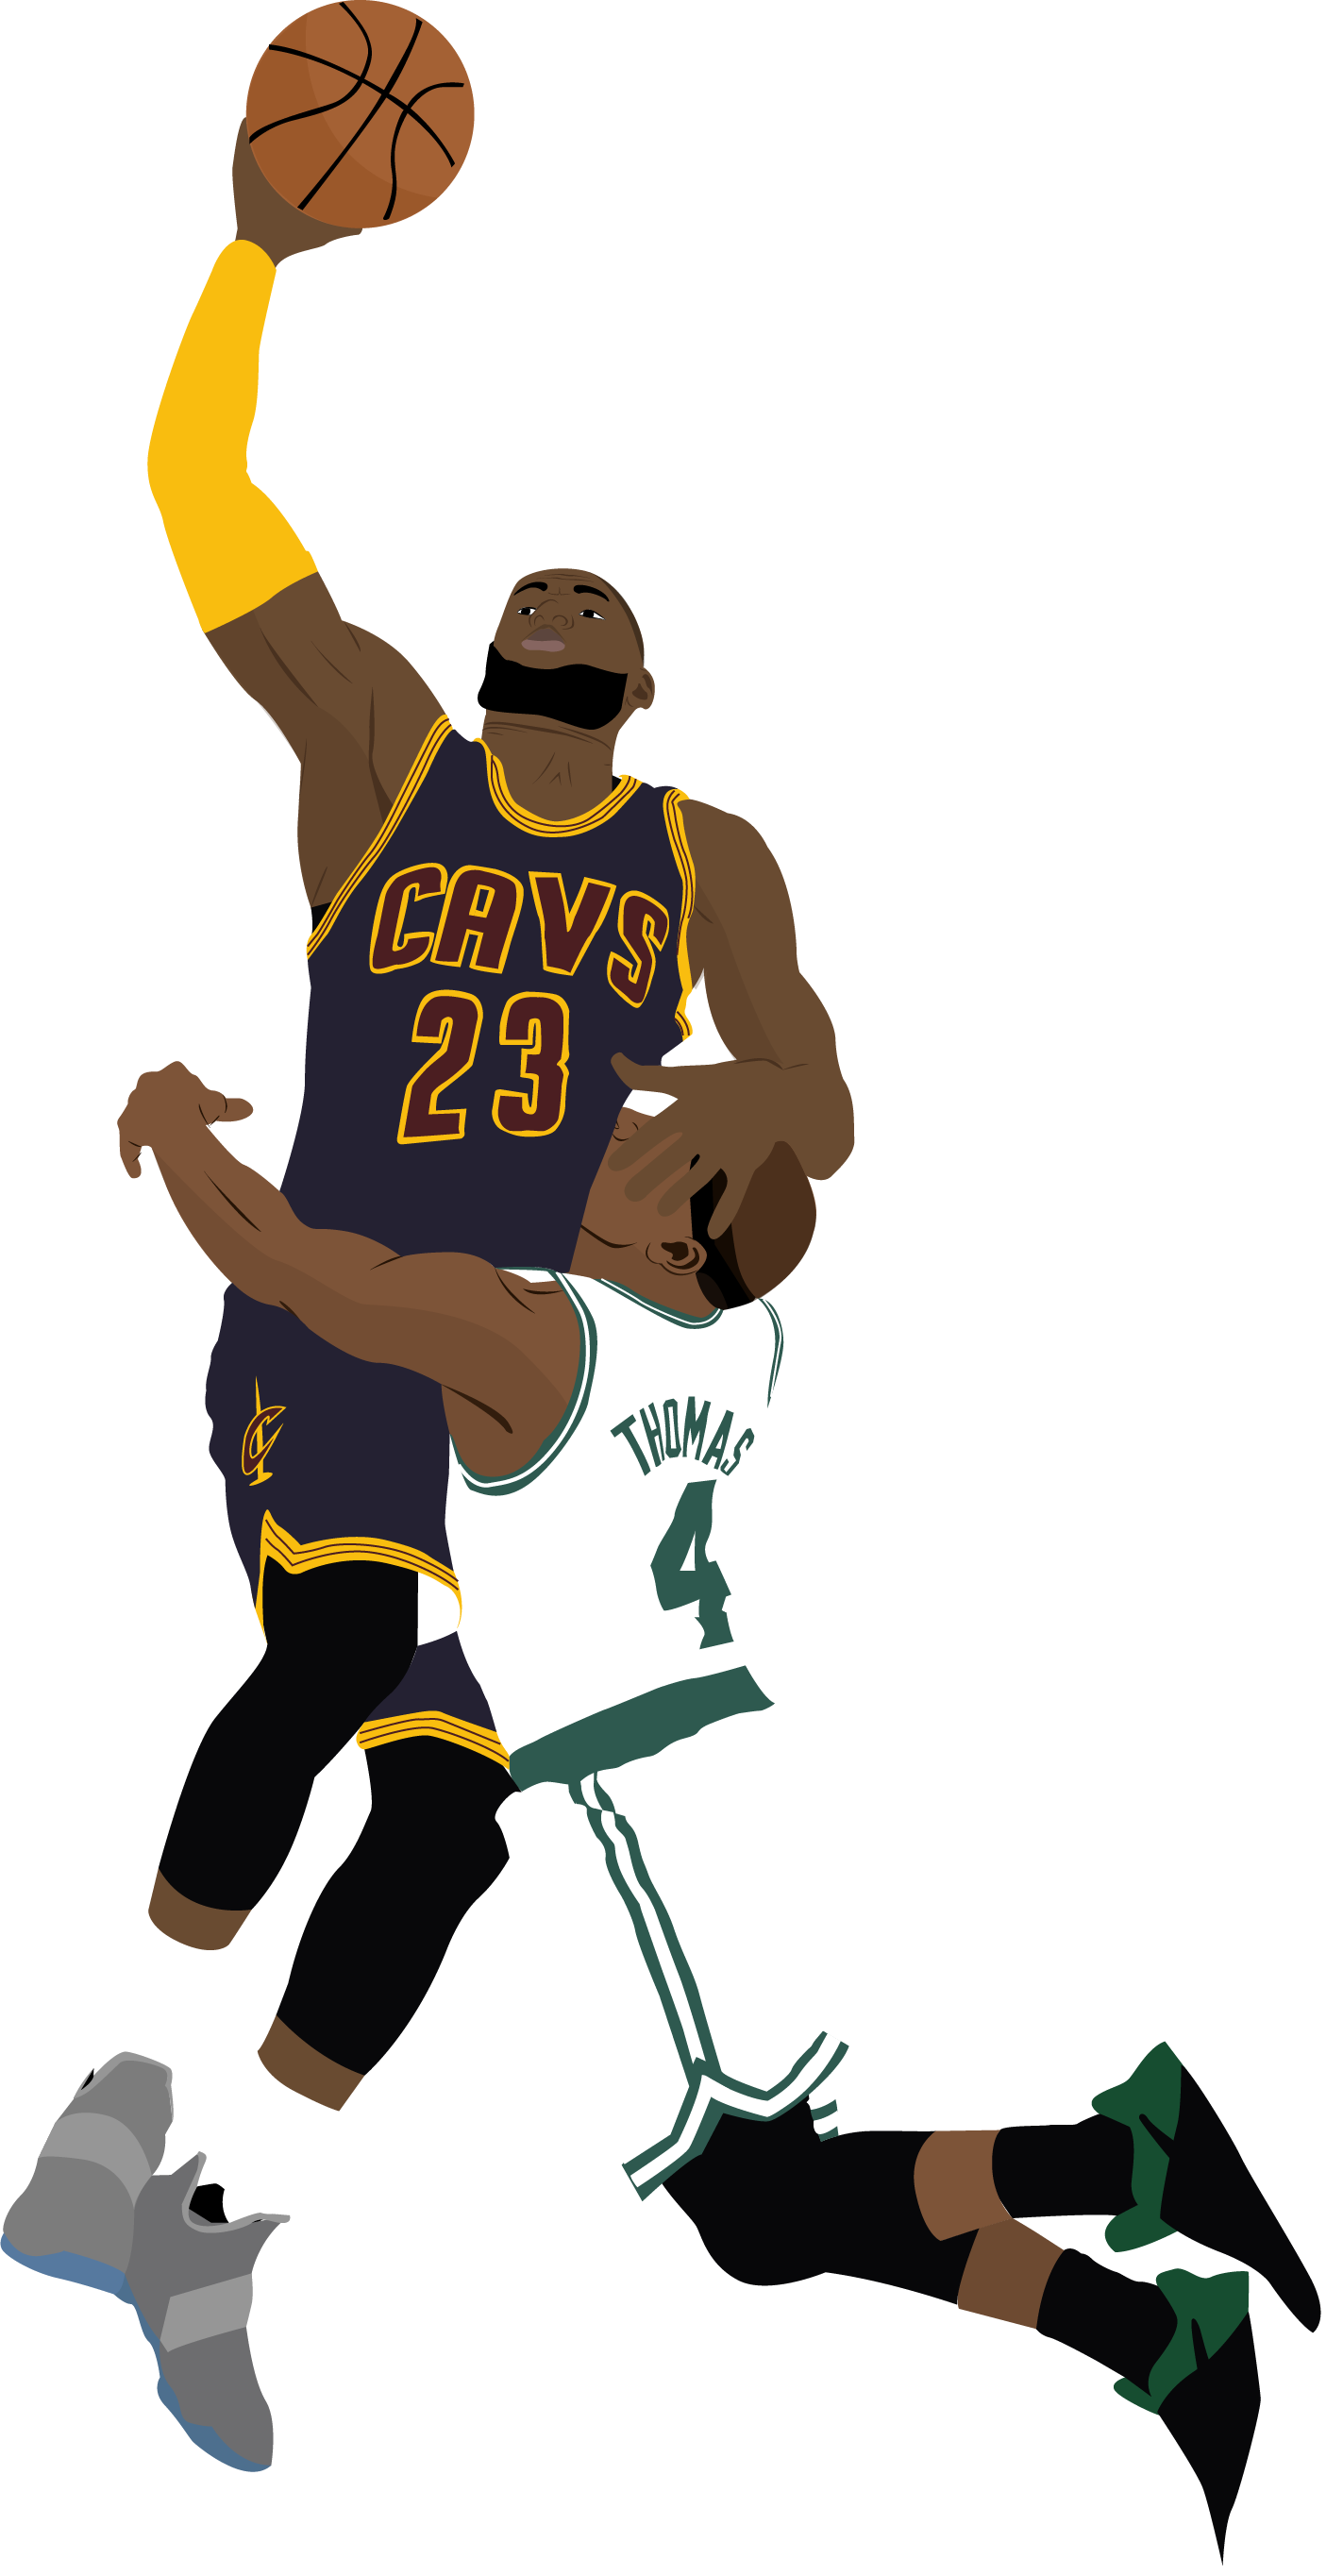 Lebron James Cartoon Wallpaper Posted By Zoey Peltier